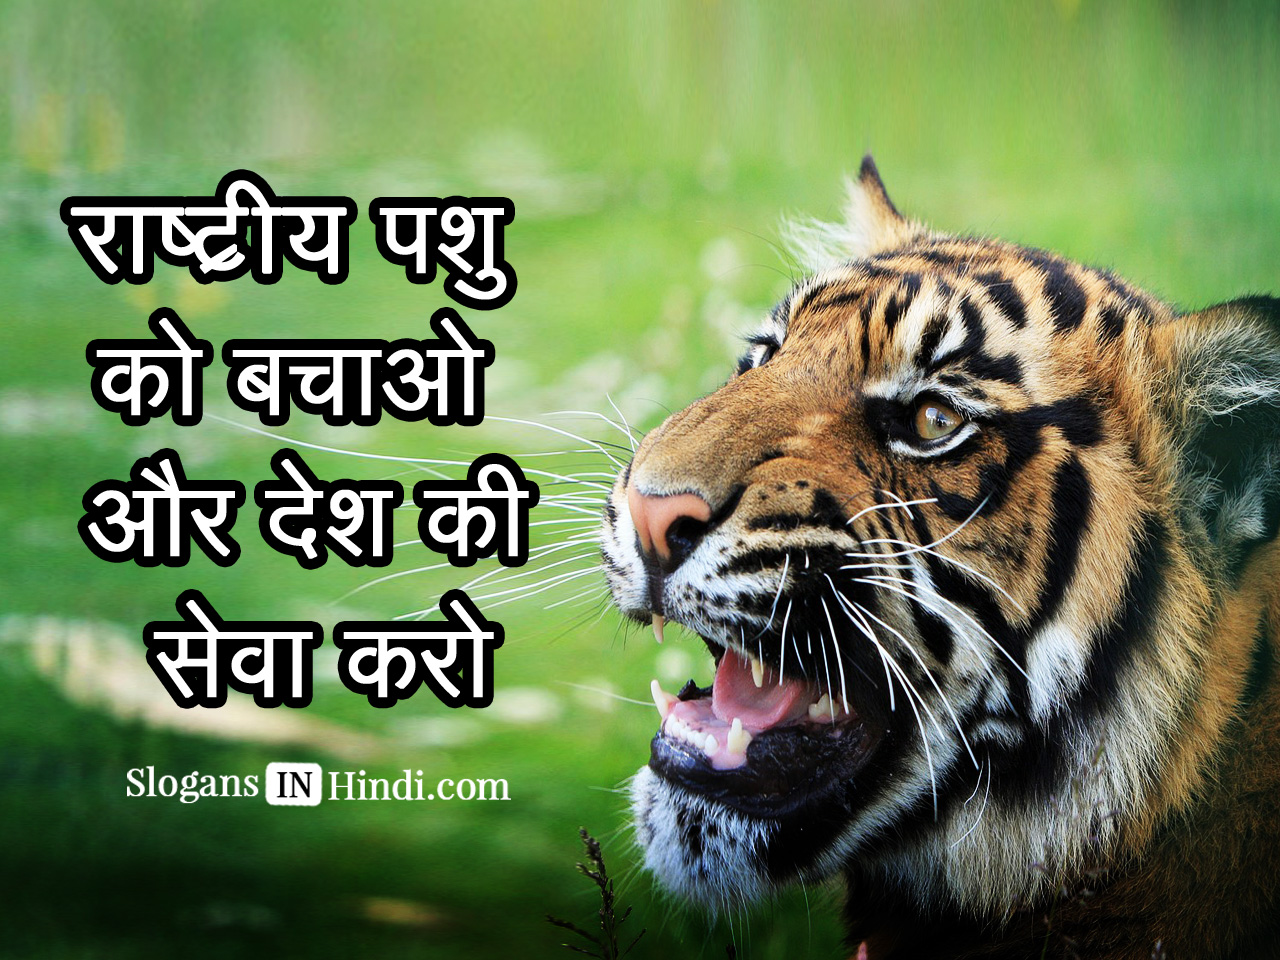 save the tigers in hindi Save tigers quotes and slogan (advantages disadvantages ) tiger conservation tigers are unique exotic animals that are beloved by many around the world but as intriguing as they are, these animals are endangered and have been threatened by nature and man alike over the years.